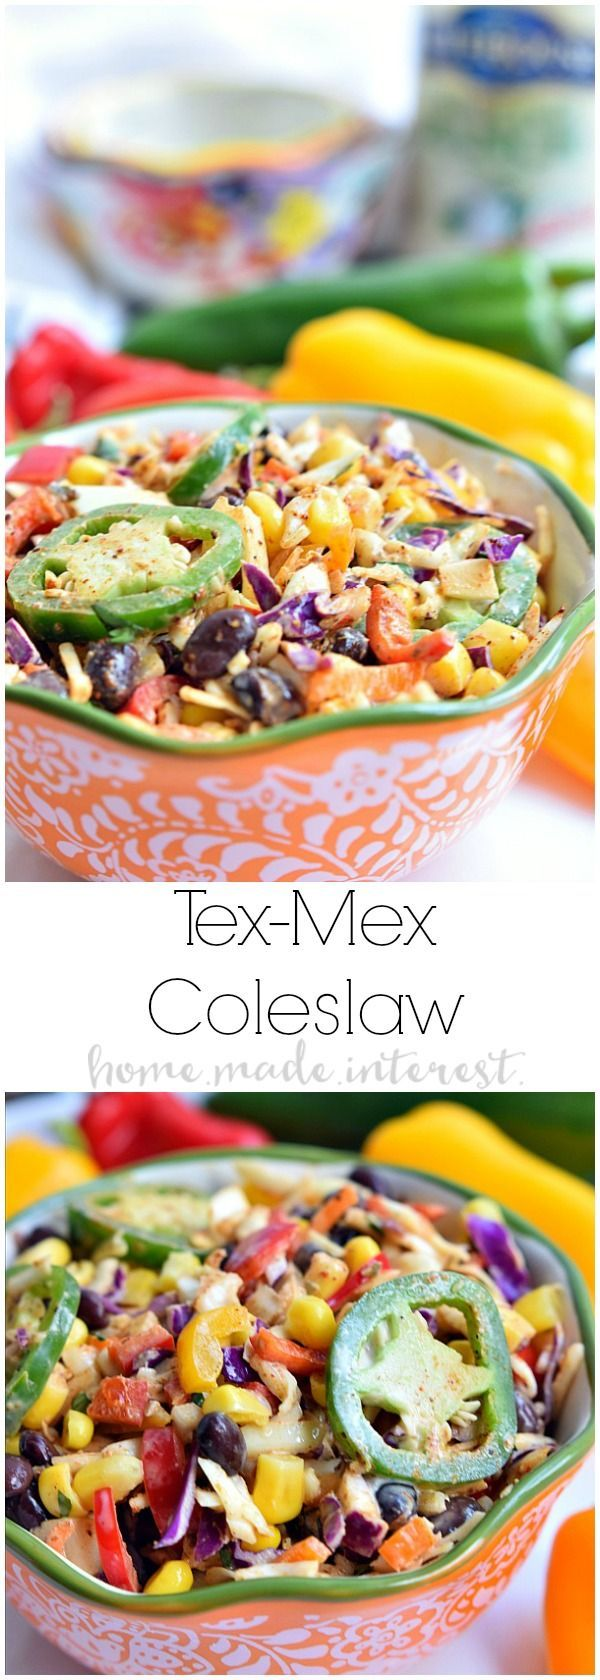 Spice up the usual coleslaw recipe with a little Tex-Mex flavor! This southwest inspired coleslaw has all of the Tex-Mex flavors you love, chili, cumin, black beans, corn, and don't forget the ranch dressing! Make this Tex-Mex coleslaw as an easy summer side dish that is perfect for cook outs, BBQs, and potlucks.